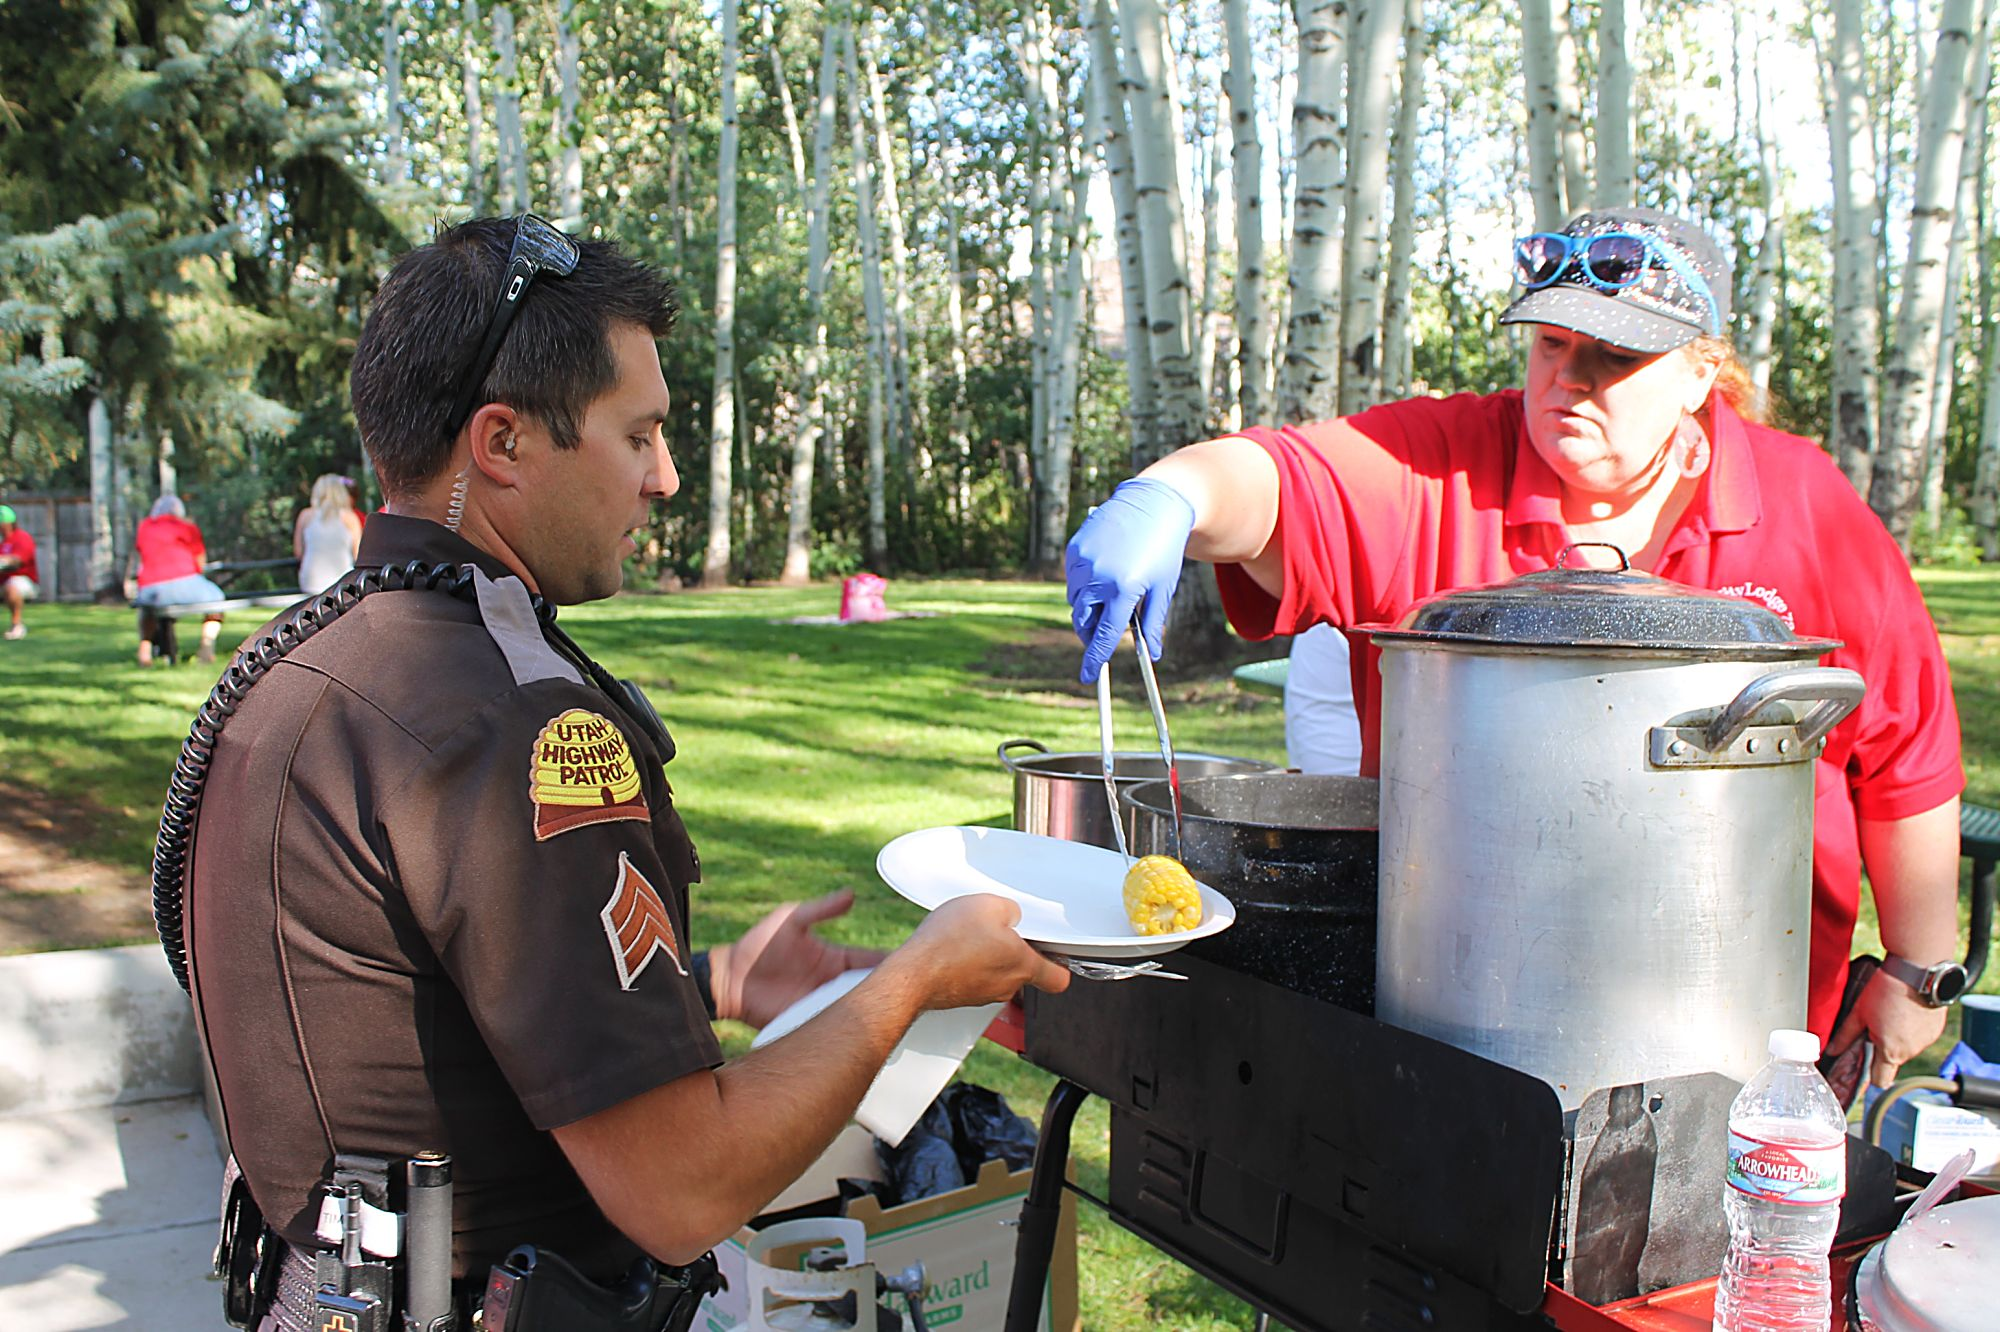 First responders honored at annual Elks Lodge picnic